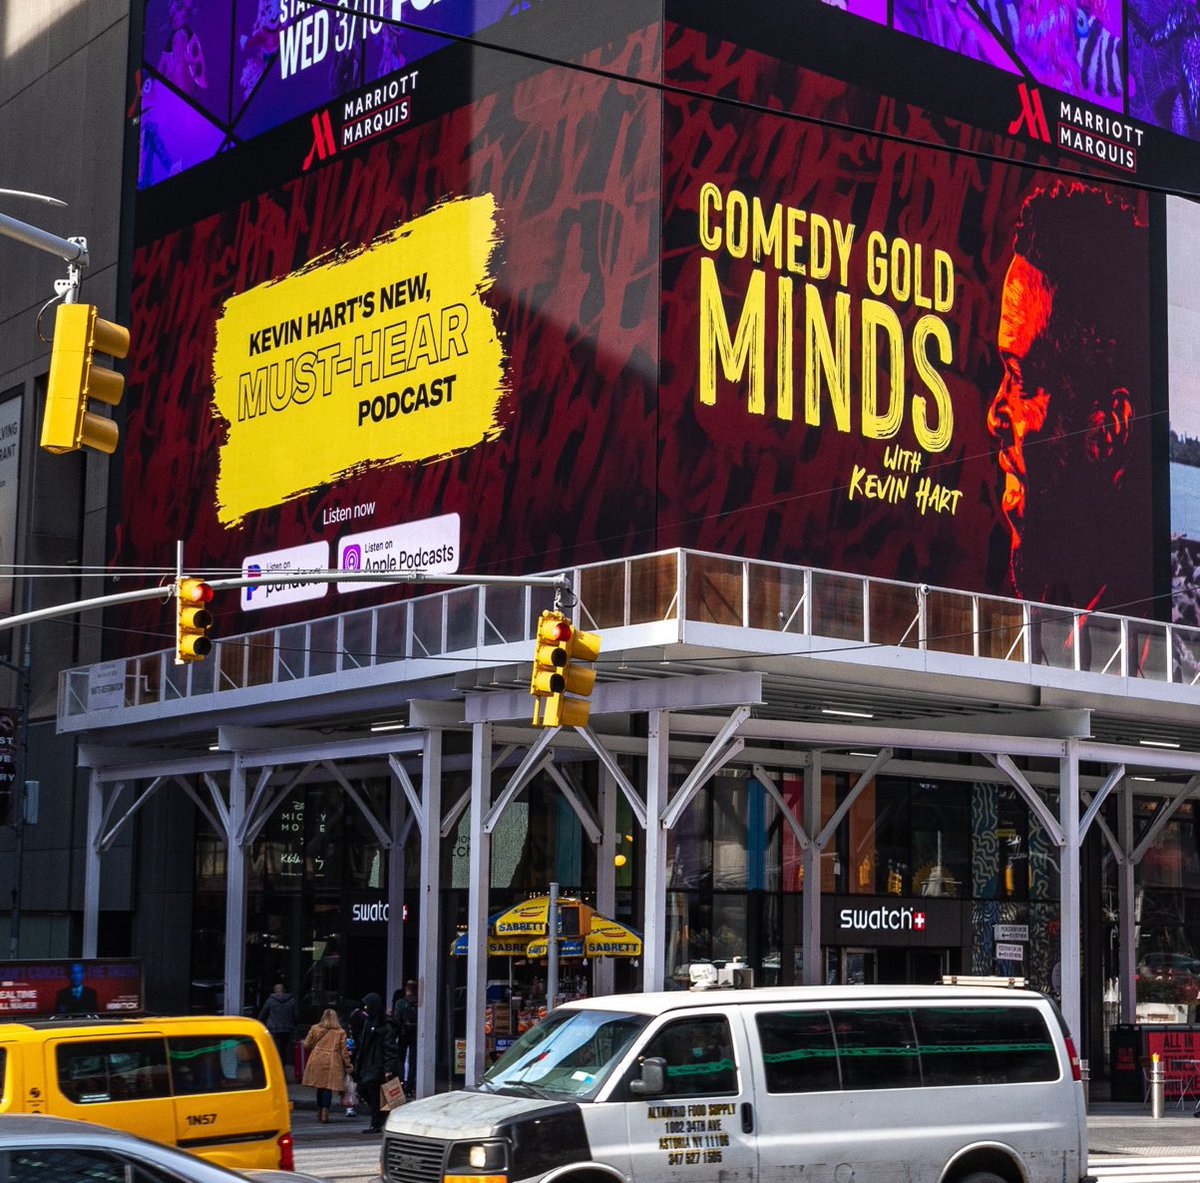 Yeah you see it 😏🤩 Just spotted in Times Square. Stream @KevinHart4real's new podcast #ComedyGoldMinds now on @SIRIUSXM and @pandoramusic!